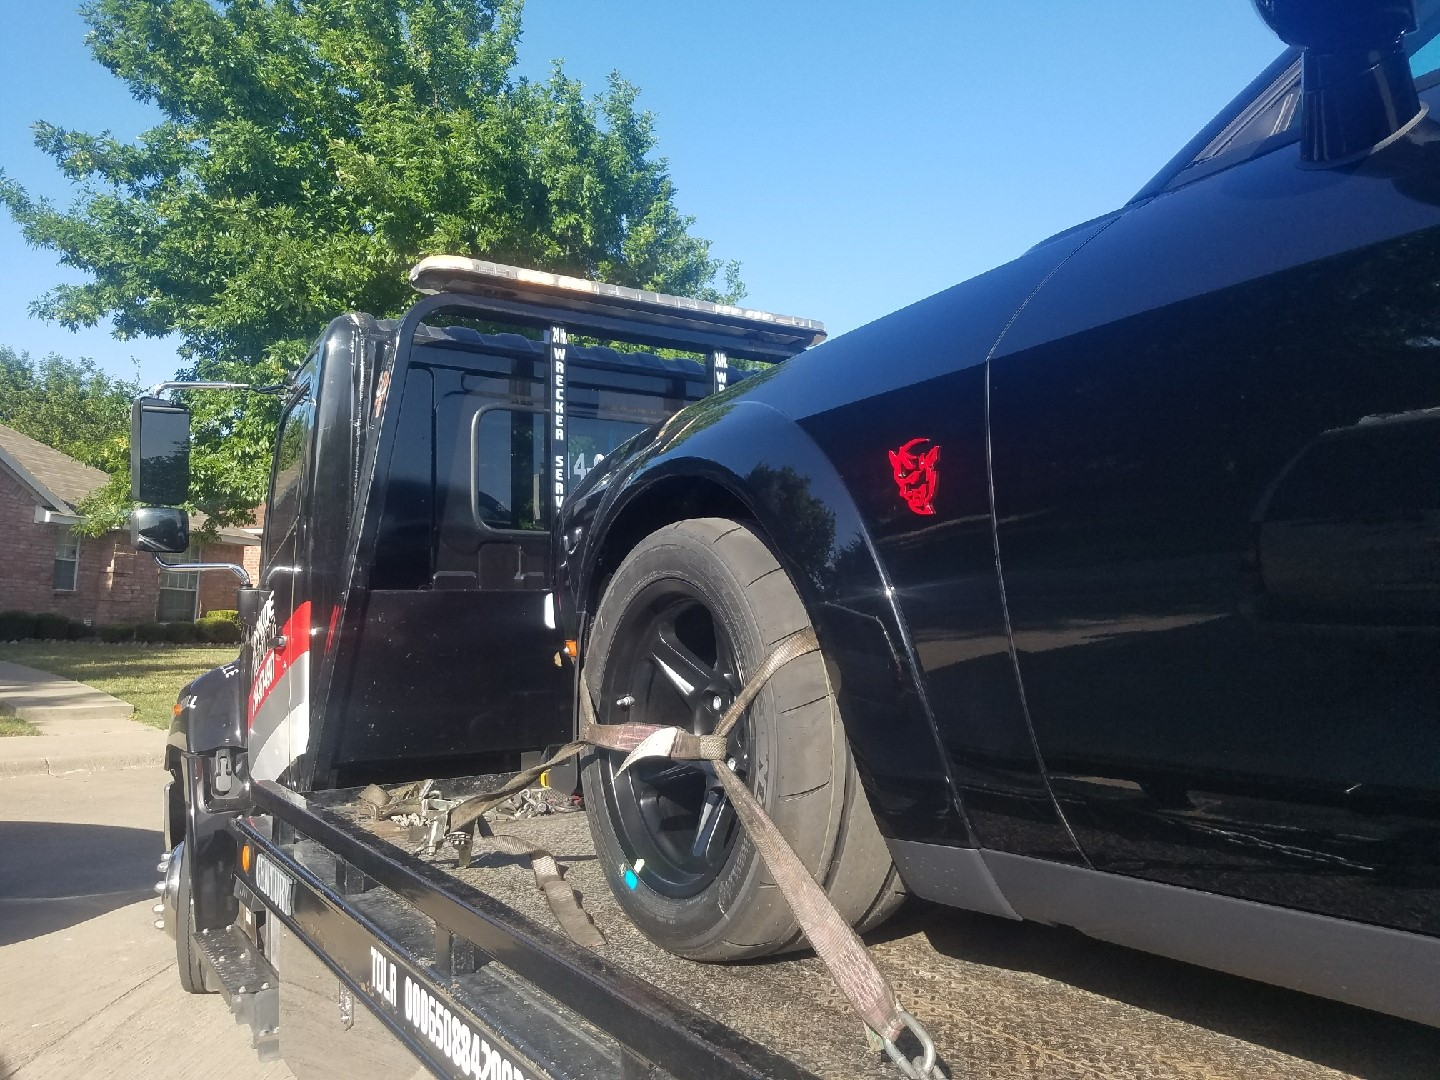 Towing Dodge Demon from Waxahachie to Mesquite